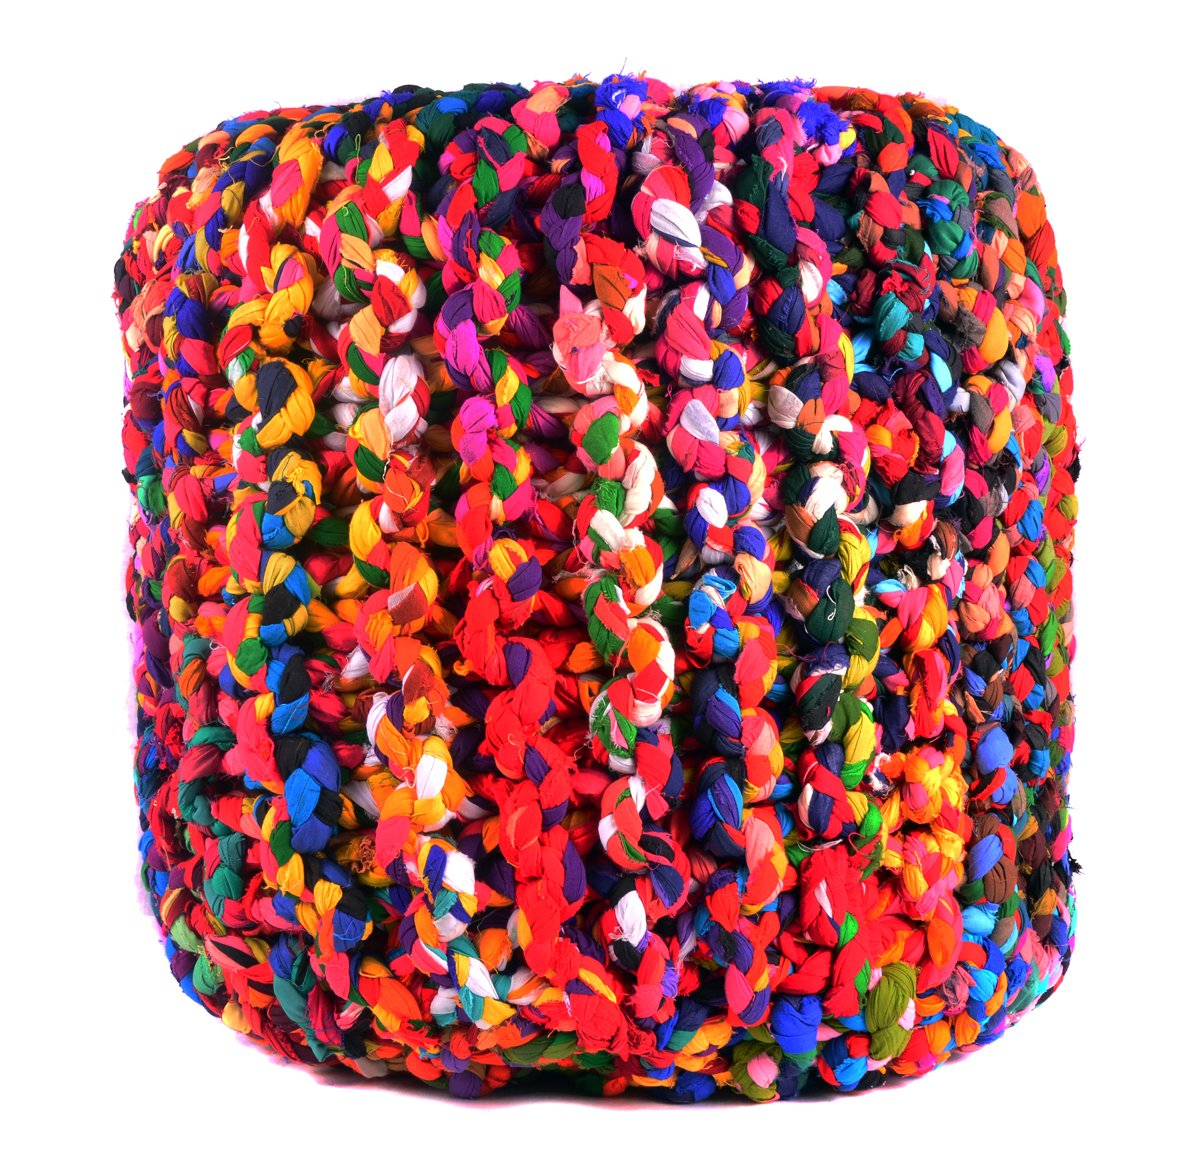 Pouf Ottoman Multicolor Cylindrical Shape Hand Knitted ottoman Cotton Floor Comfortable Seat Footstool 19''x 20'' By MystiqueDecors